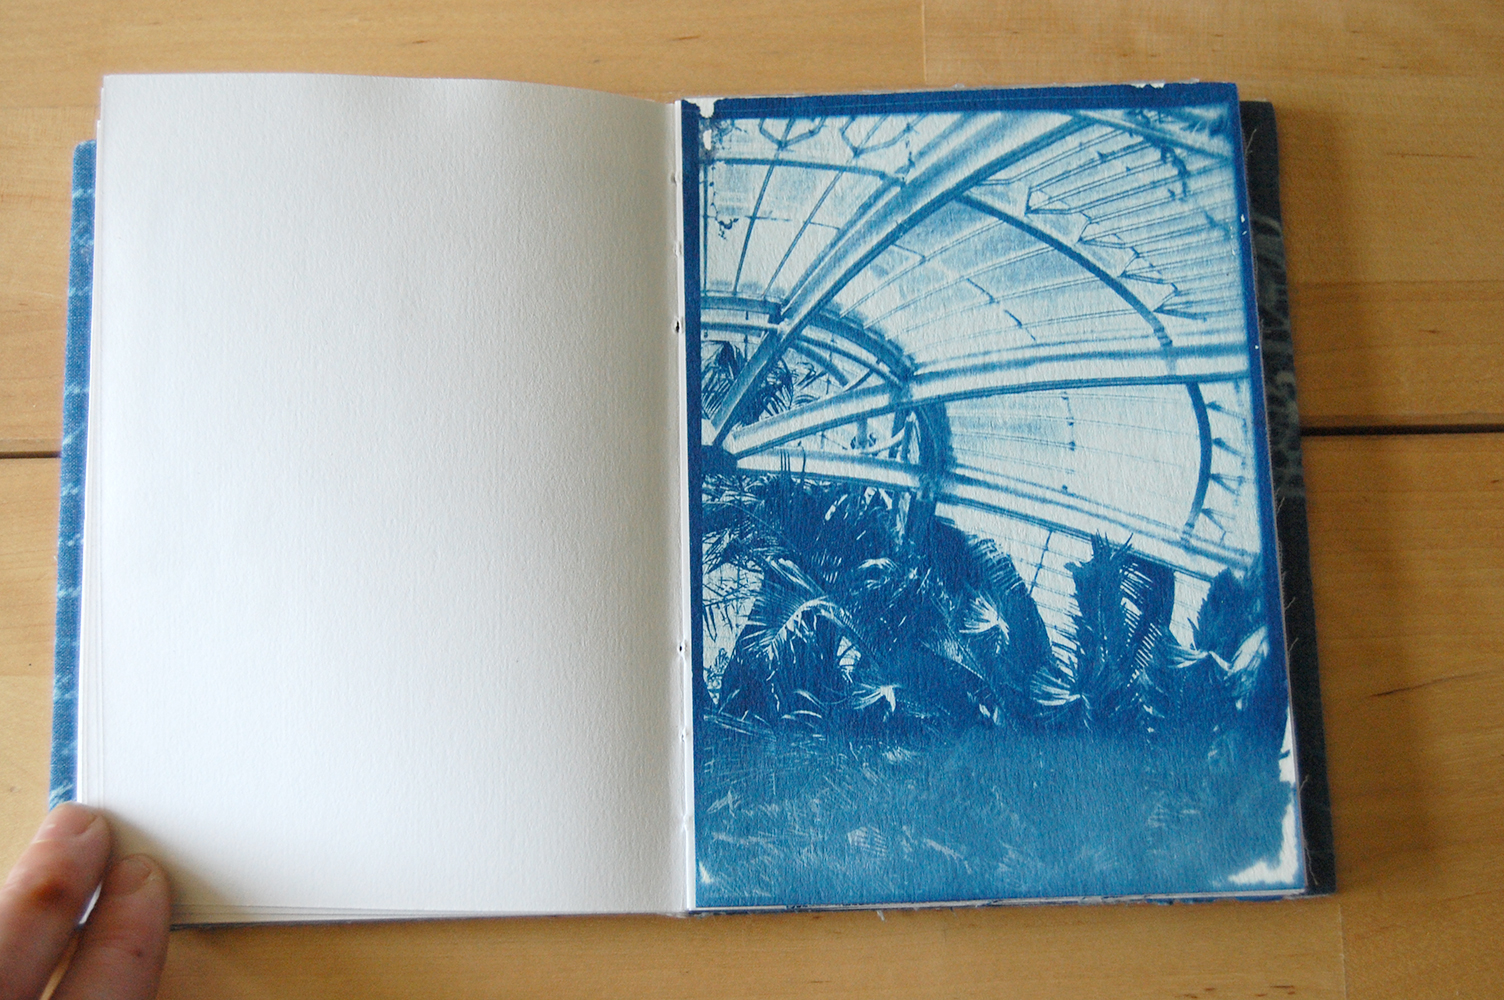 cyanotype print on paper.  image credit.